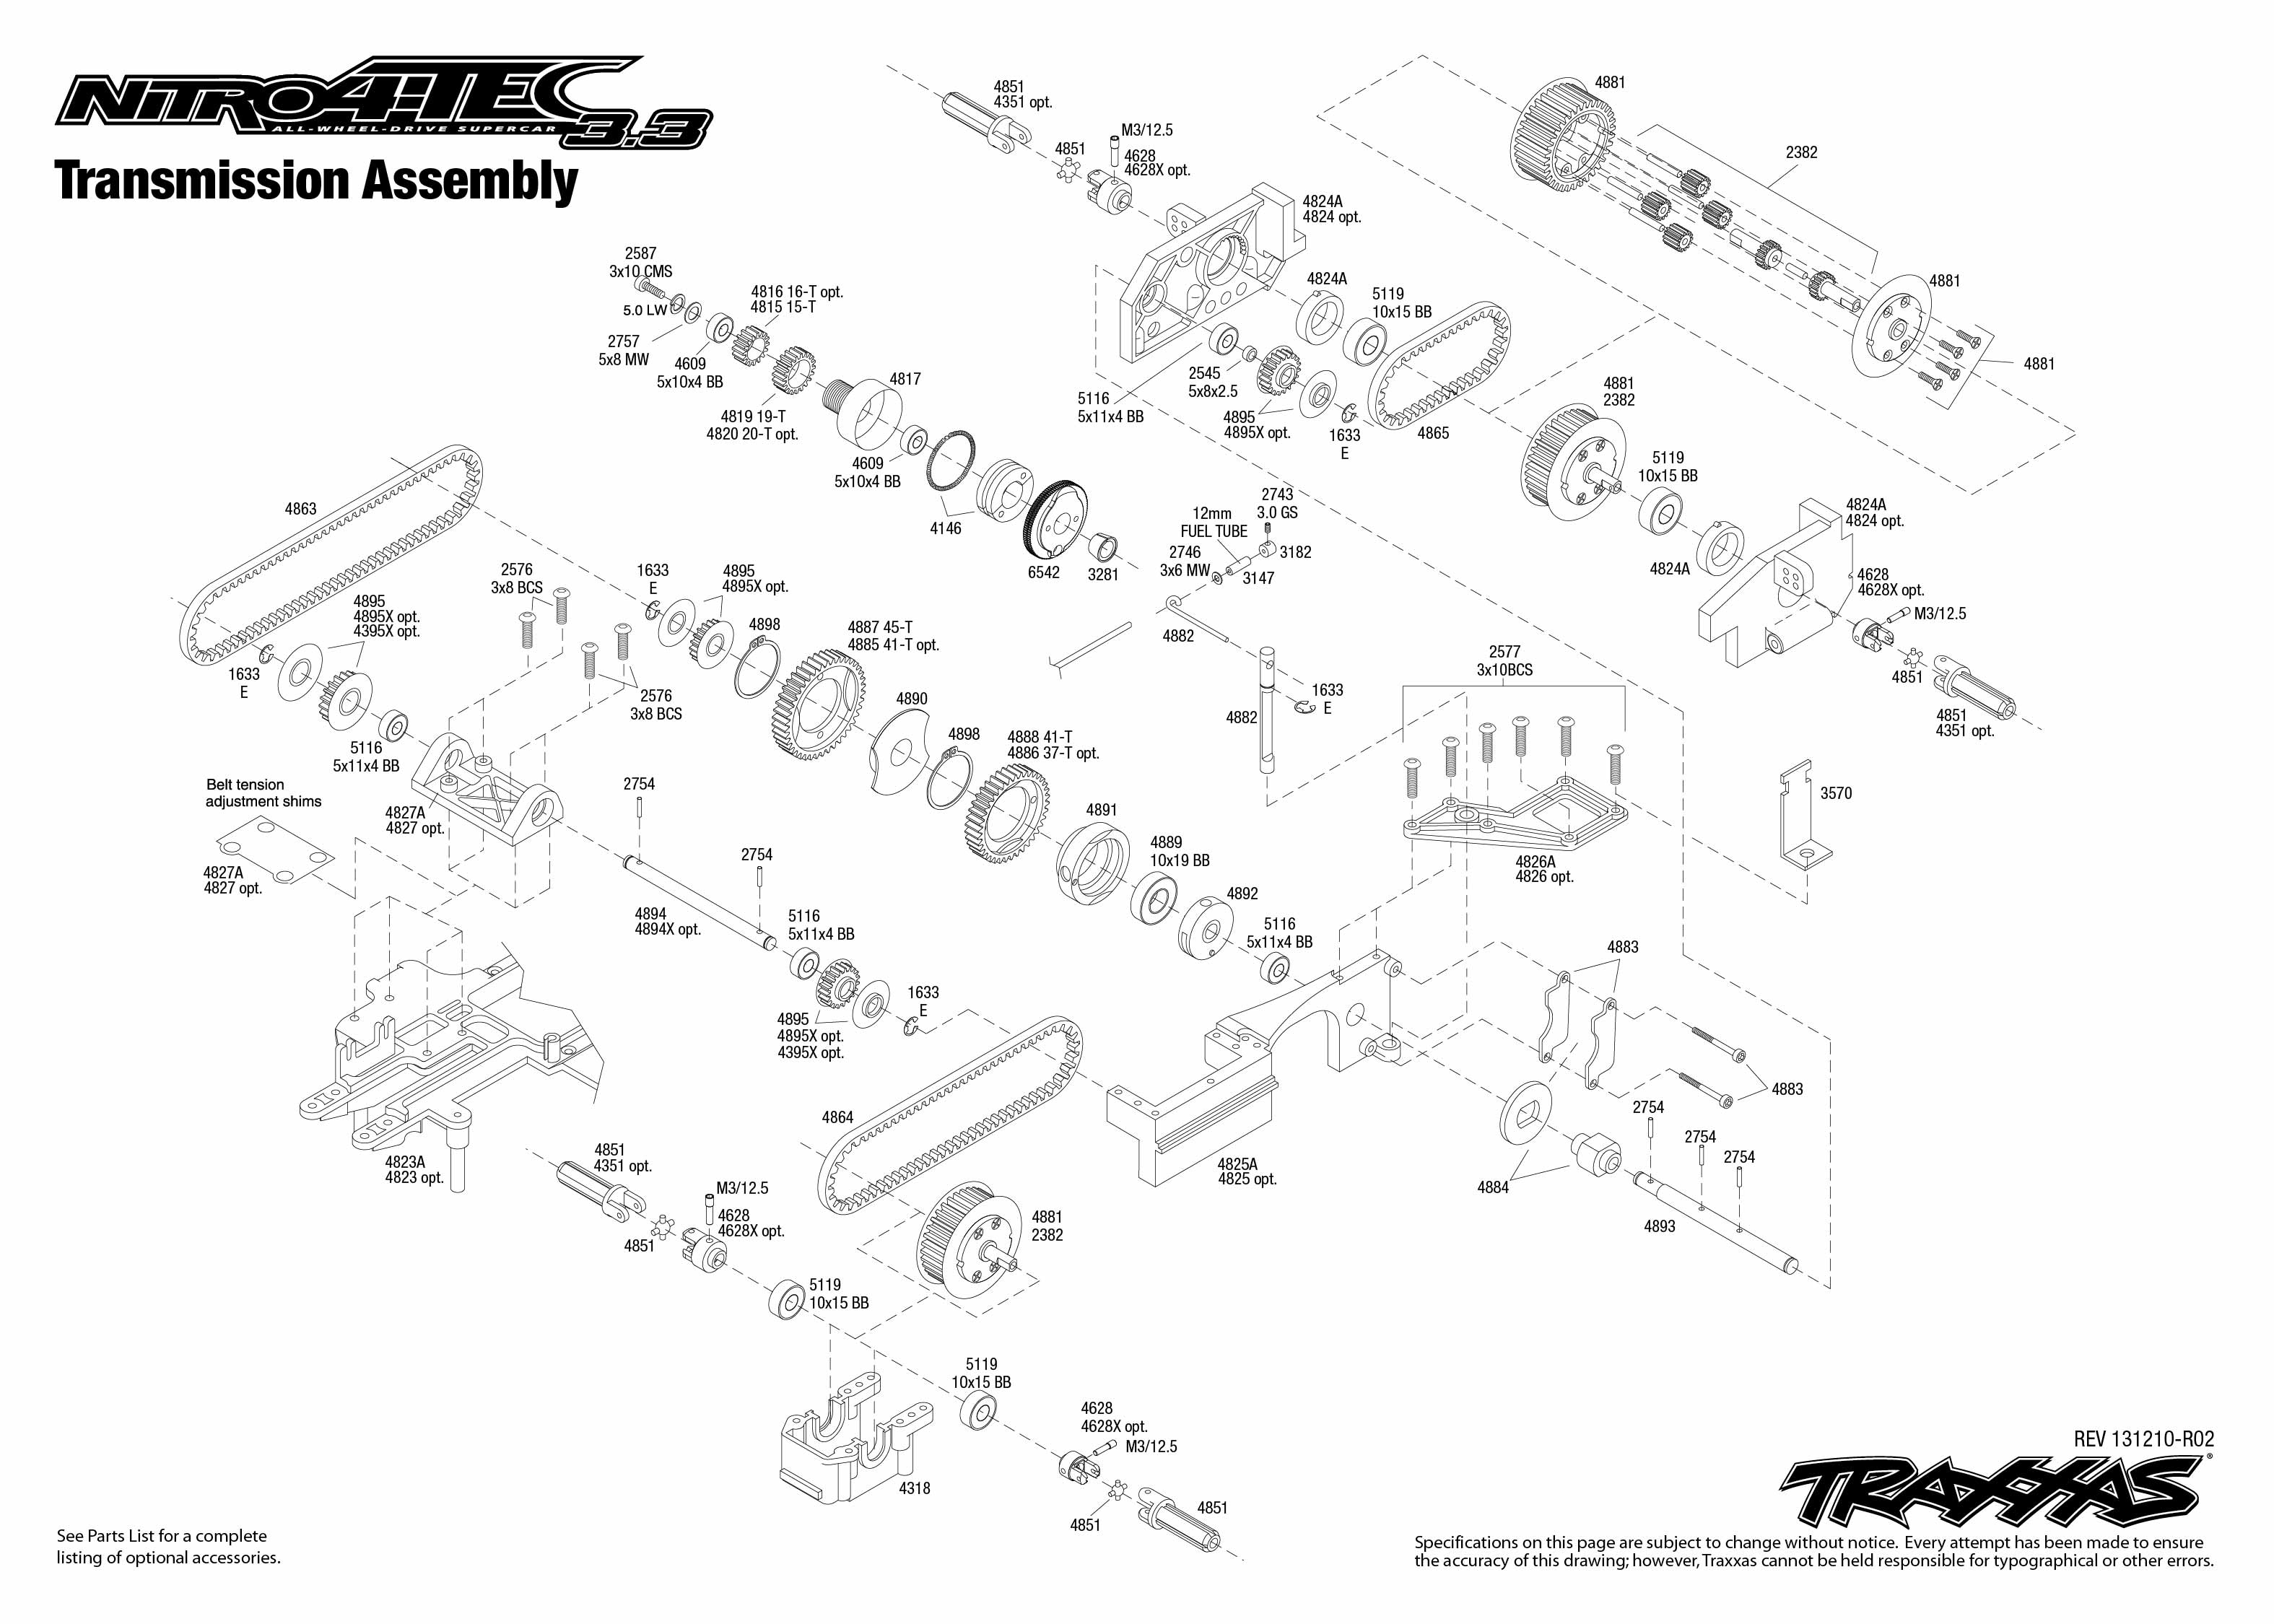 Traxxas Oba Wiring Diagram from i3.wp.com